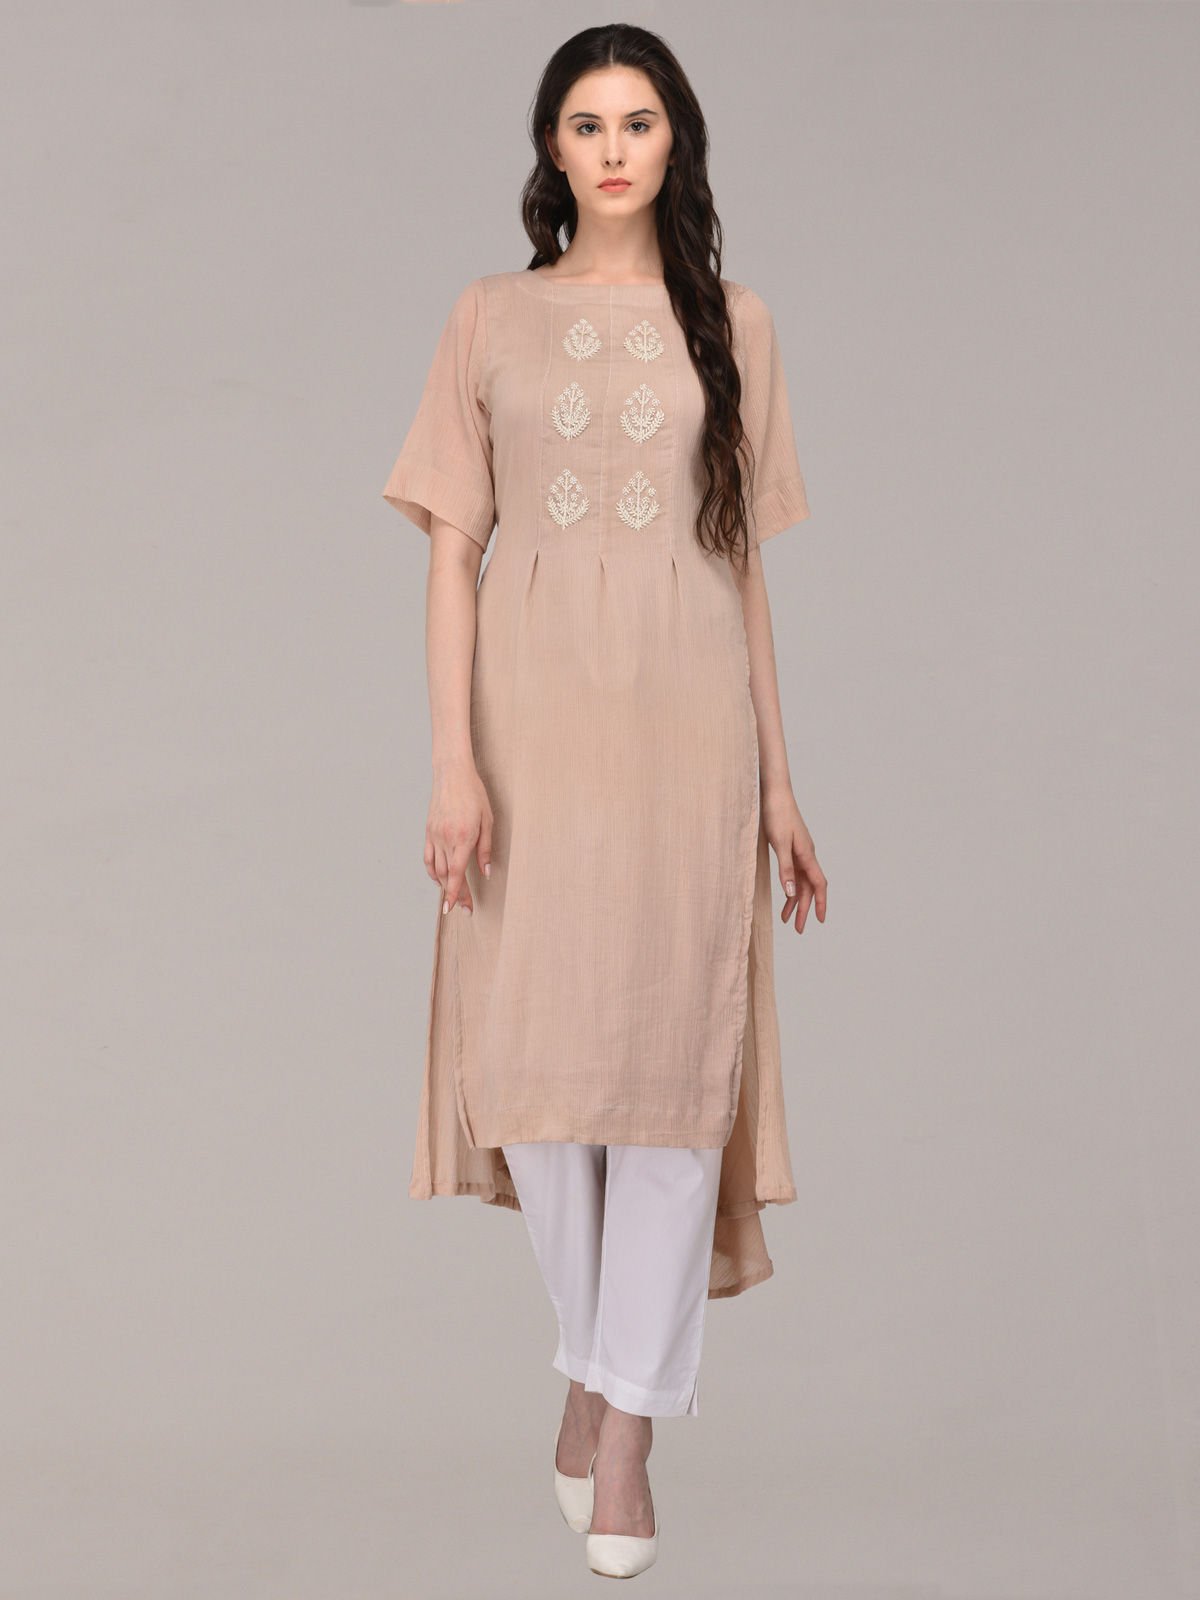 Panachee hand embroidered beige pure cotton kurti